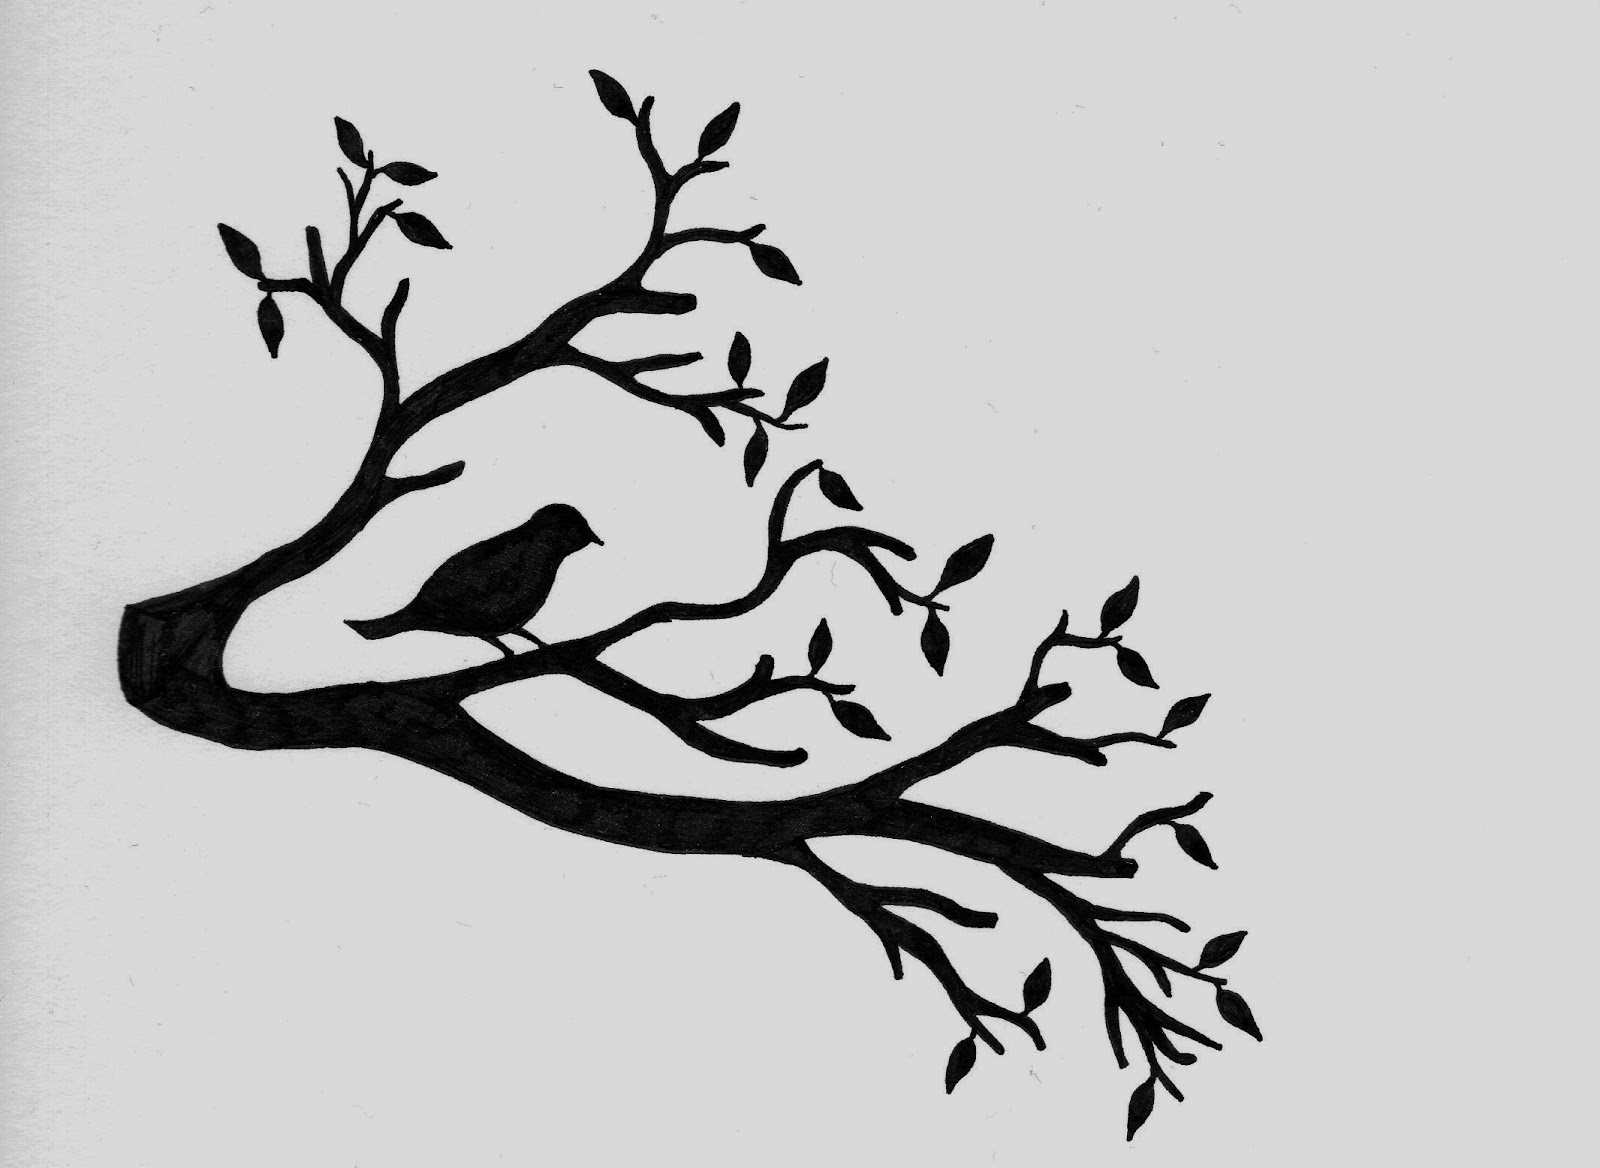 Bird Tree Silhouette